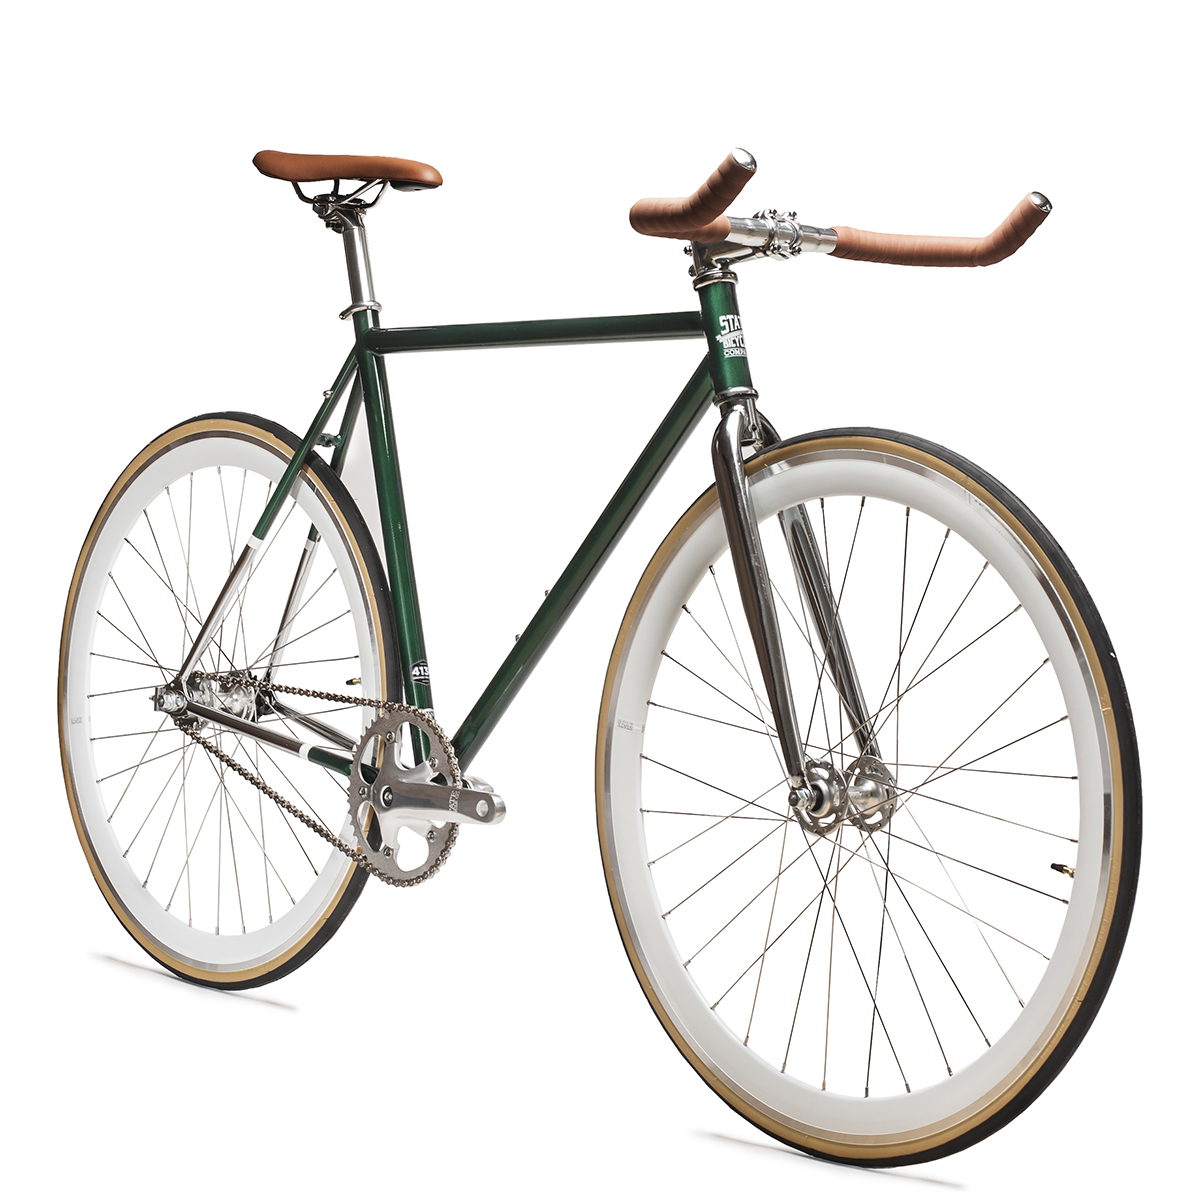 zycle fix chill single speed fixed gear fixie road bike. Black Bedroom Furniture Sets. Home Design Ideas